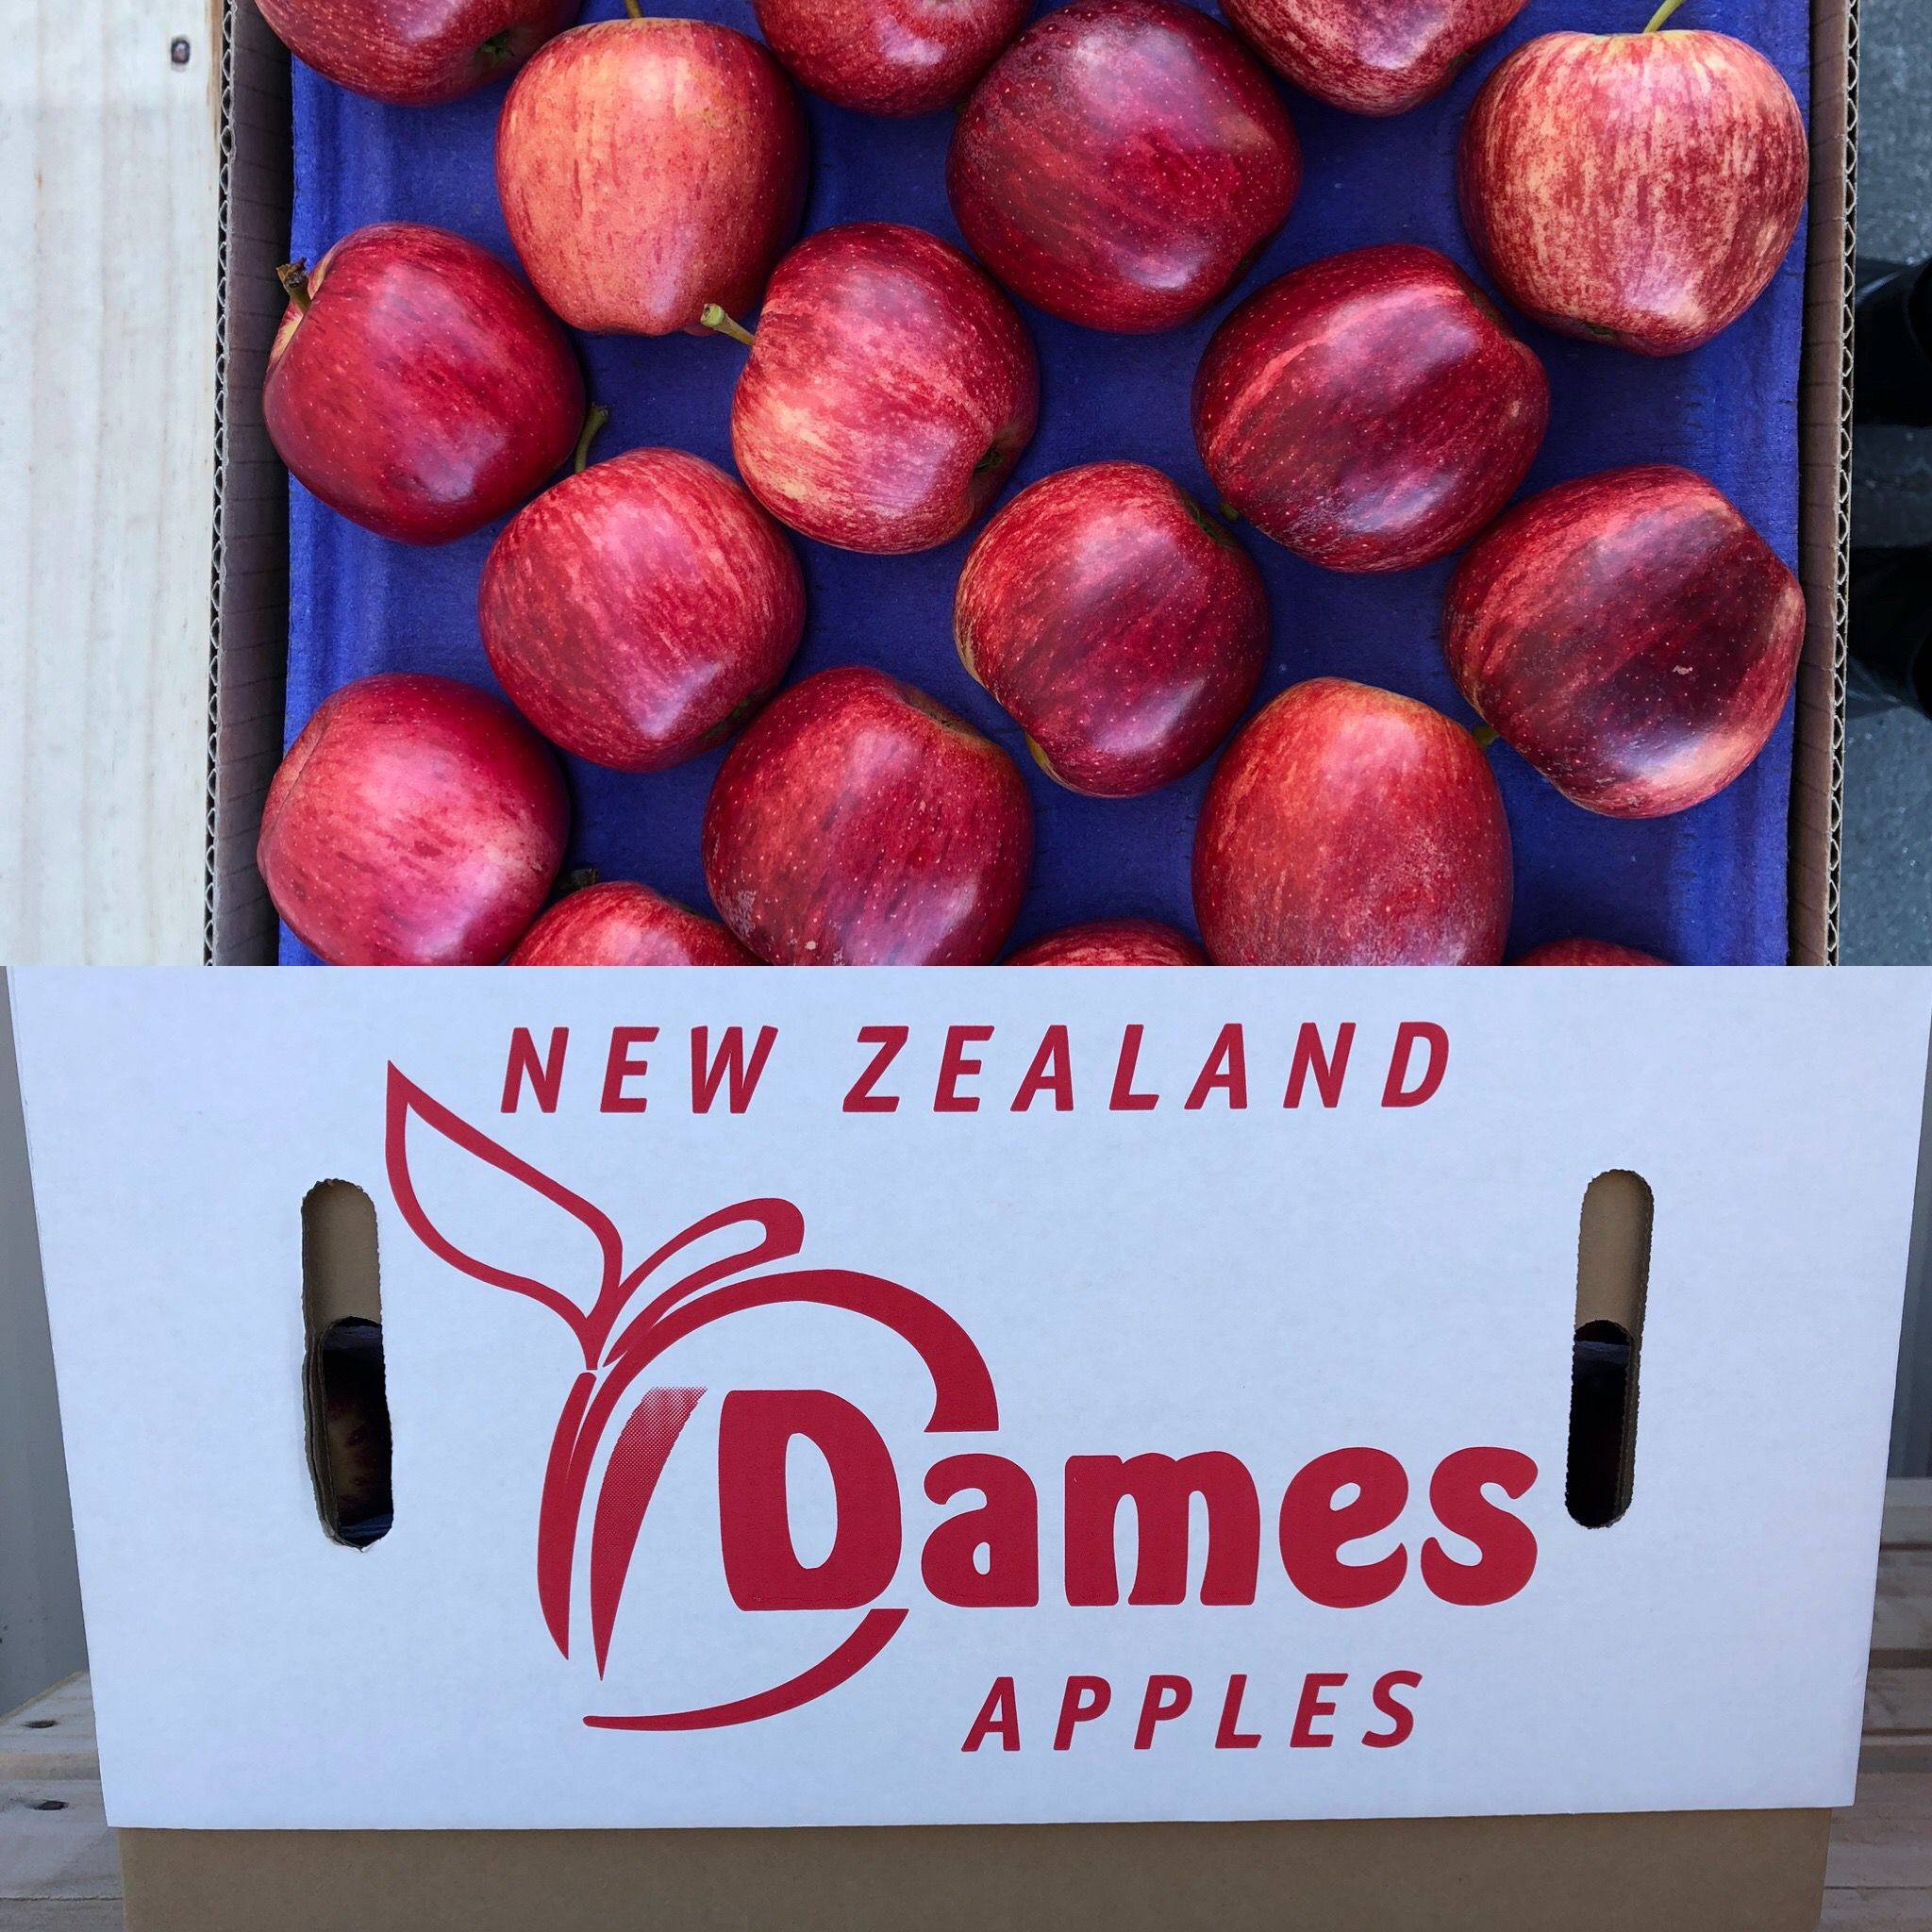 These Crunchy Juicy Delicious Hawke S Bay New Zealand Gala Apples Destined For India We Are So Proud Of Our B Delicious Restaurant Gala Apples Stone Fruit